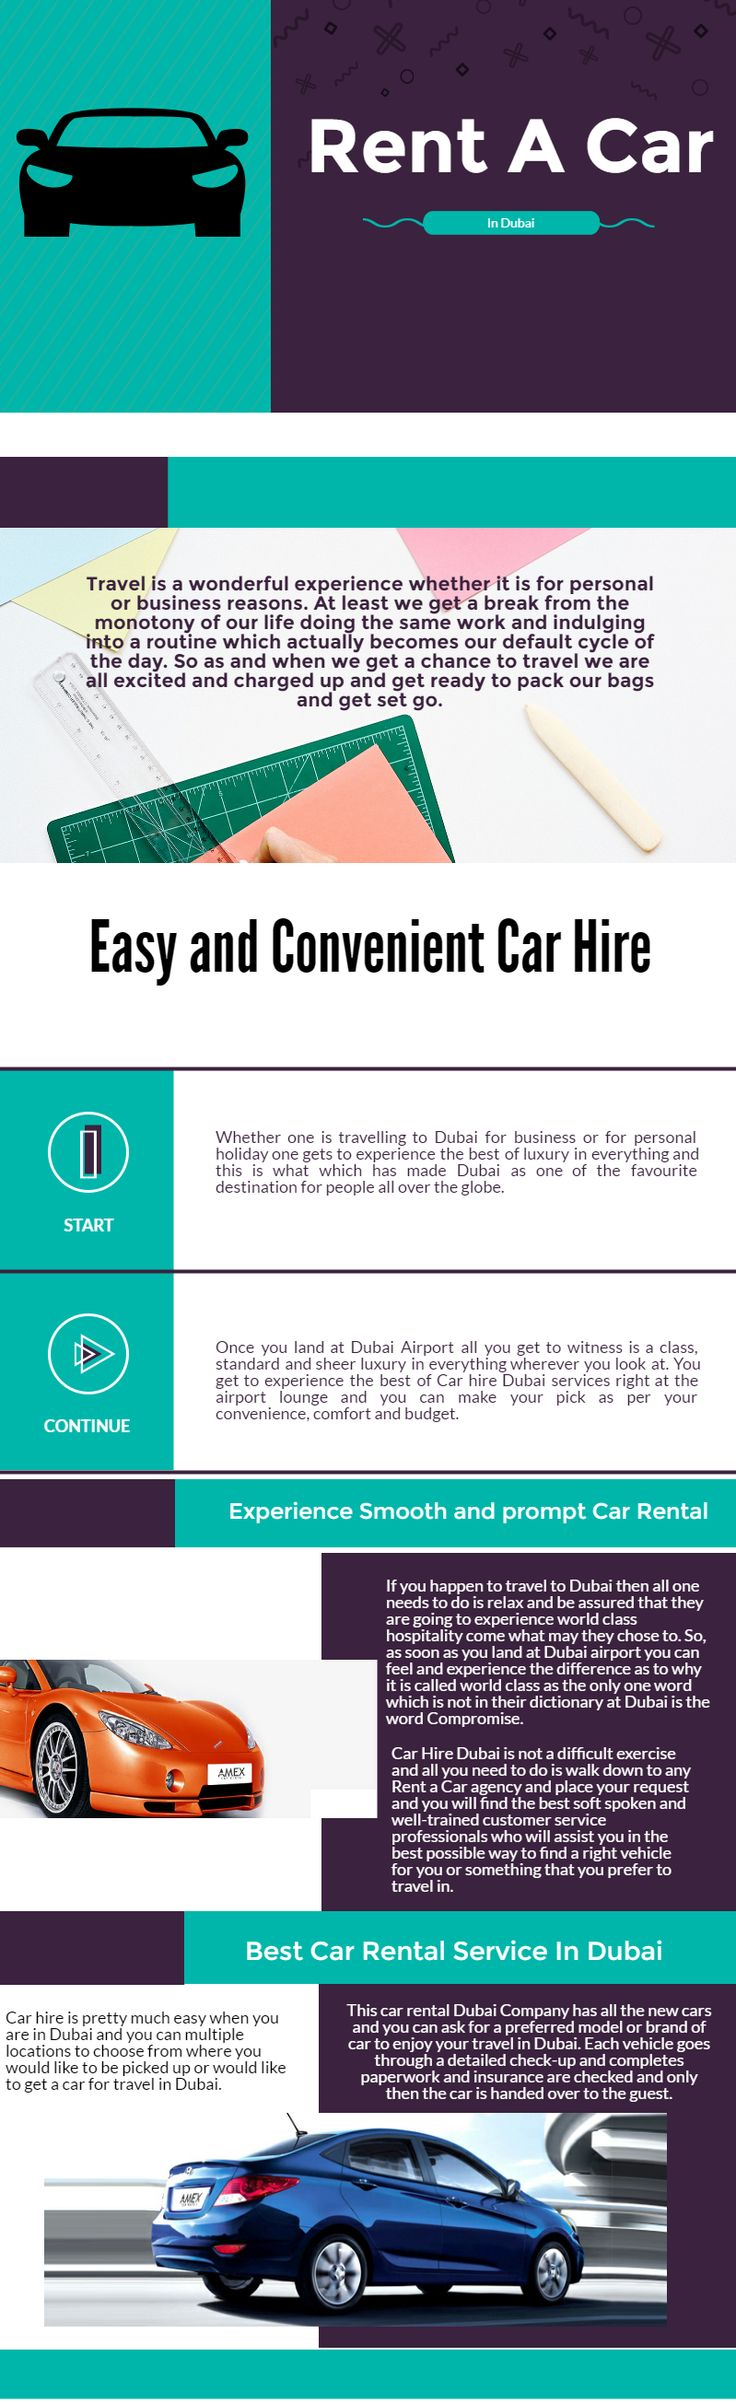 Amex rent a car strives to provide car rental car lease car hire in